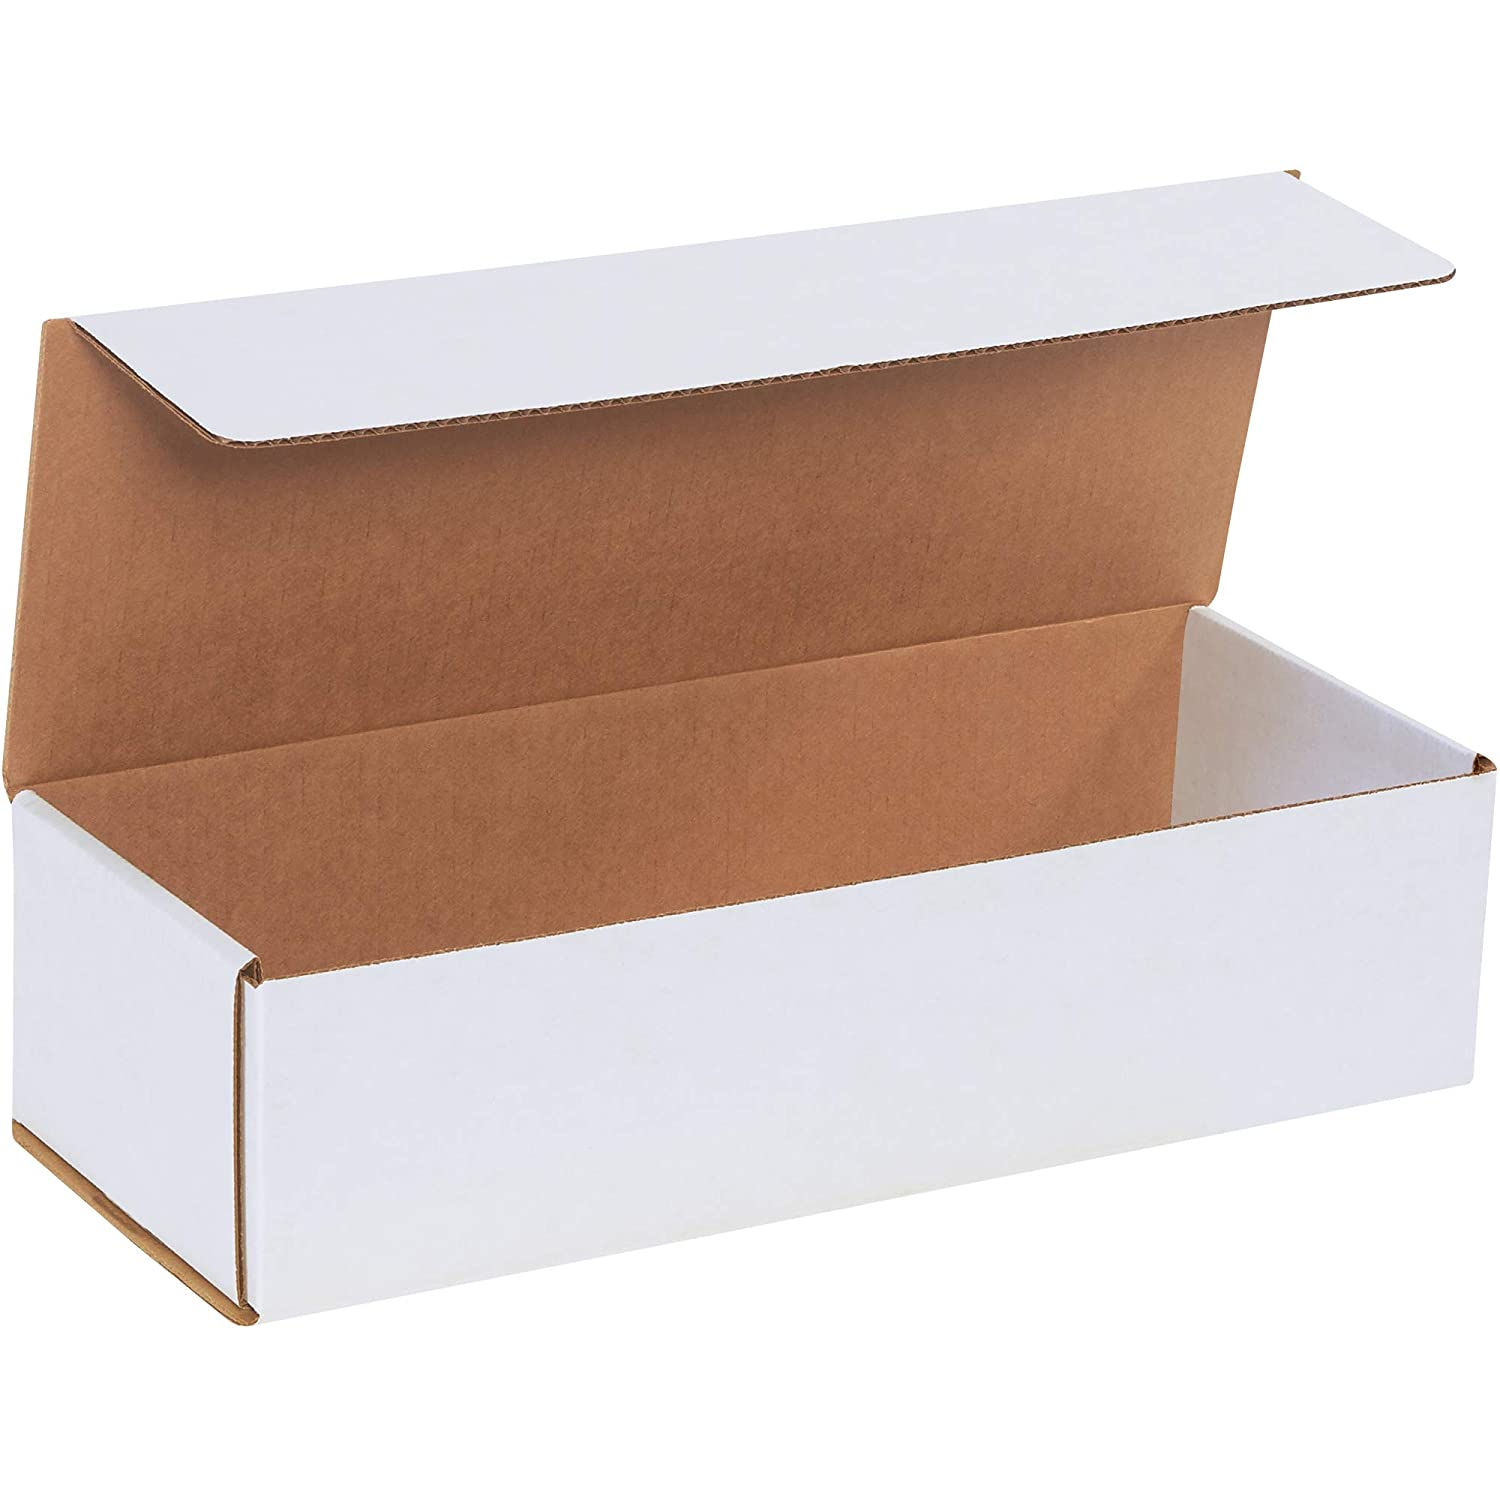 BOX USA BM1664 Corrugated Challenge the lowest price of Japan Mailers Tampa Mall 16